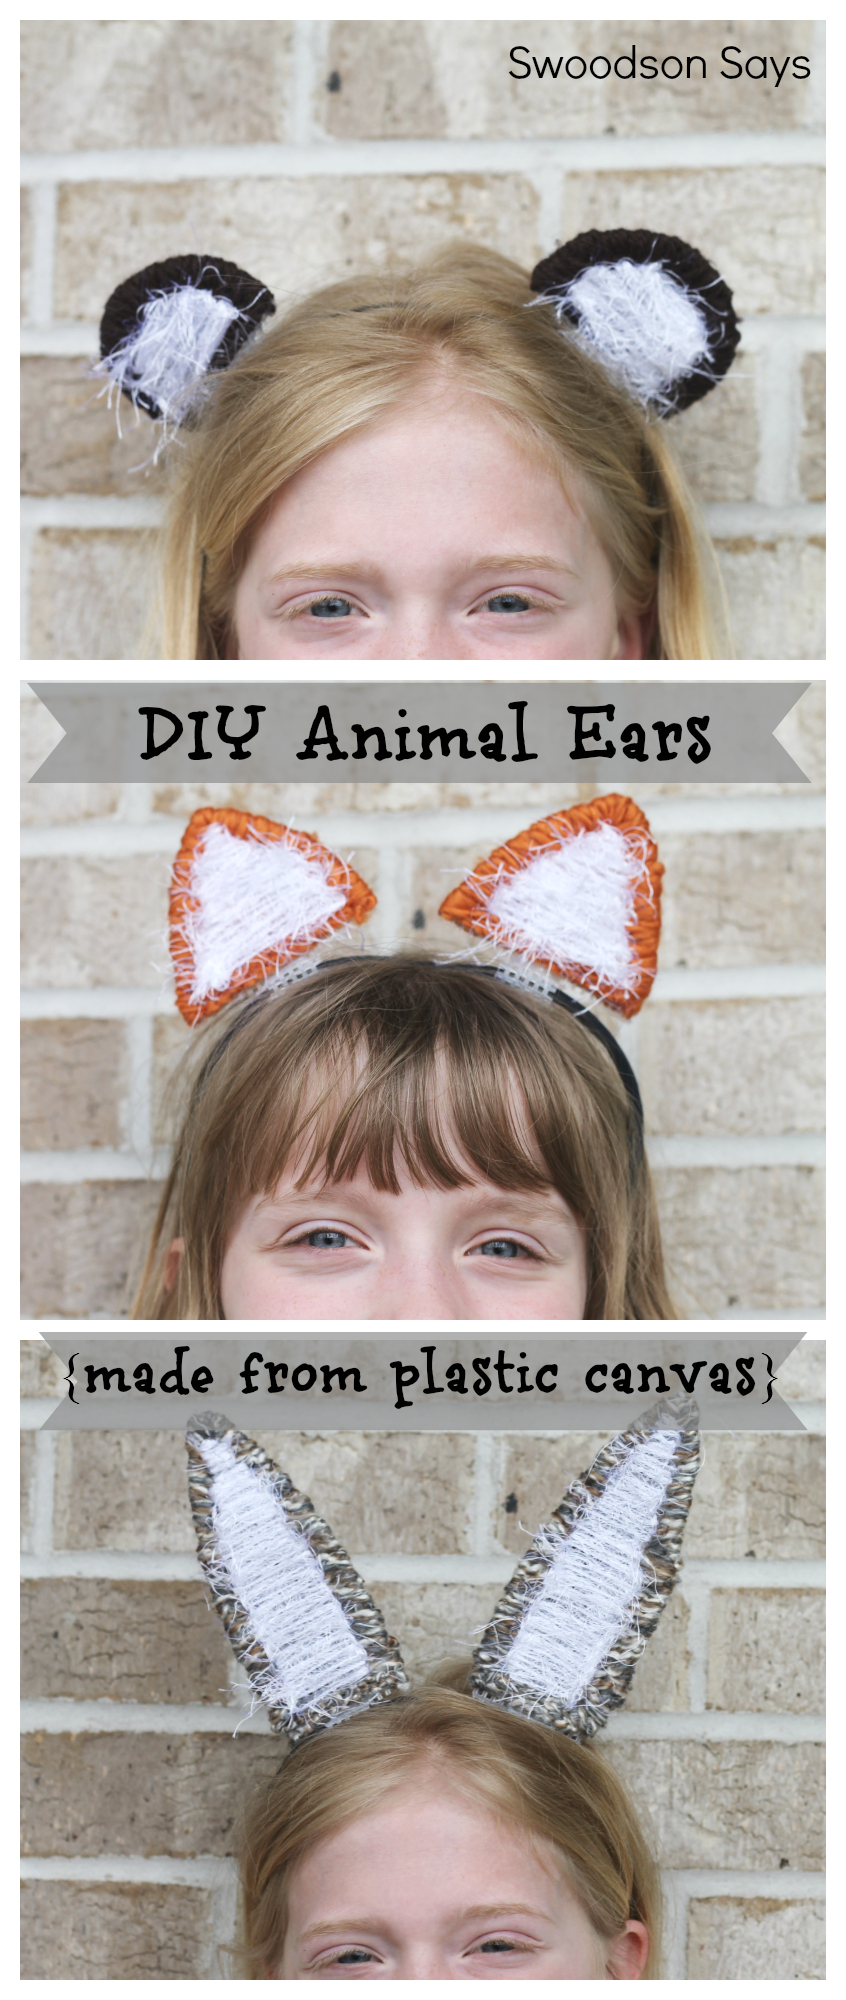 DIY Animal Ear Headband Swoodson Says 1 DIY Animal Ear Headband   Plastic Canvas Blog Hop!